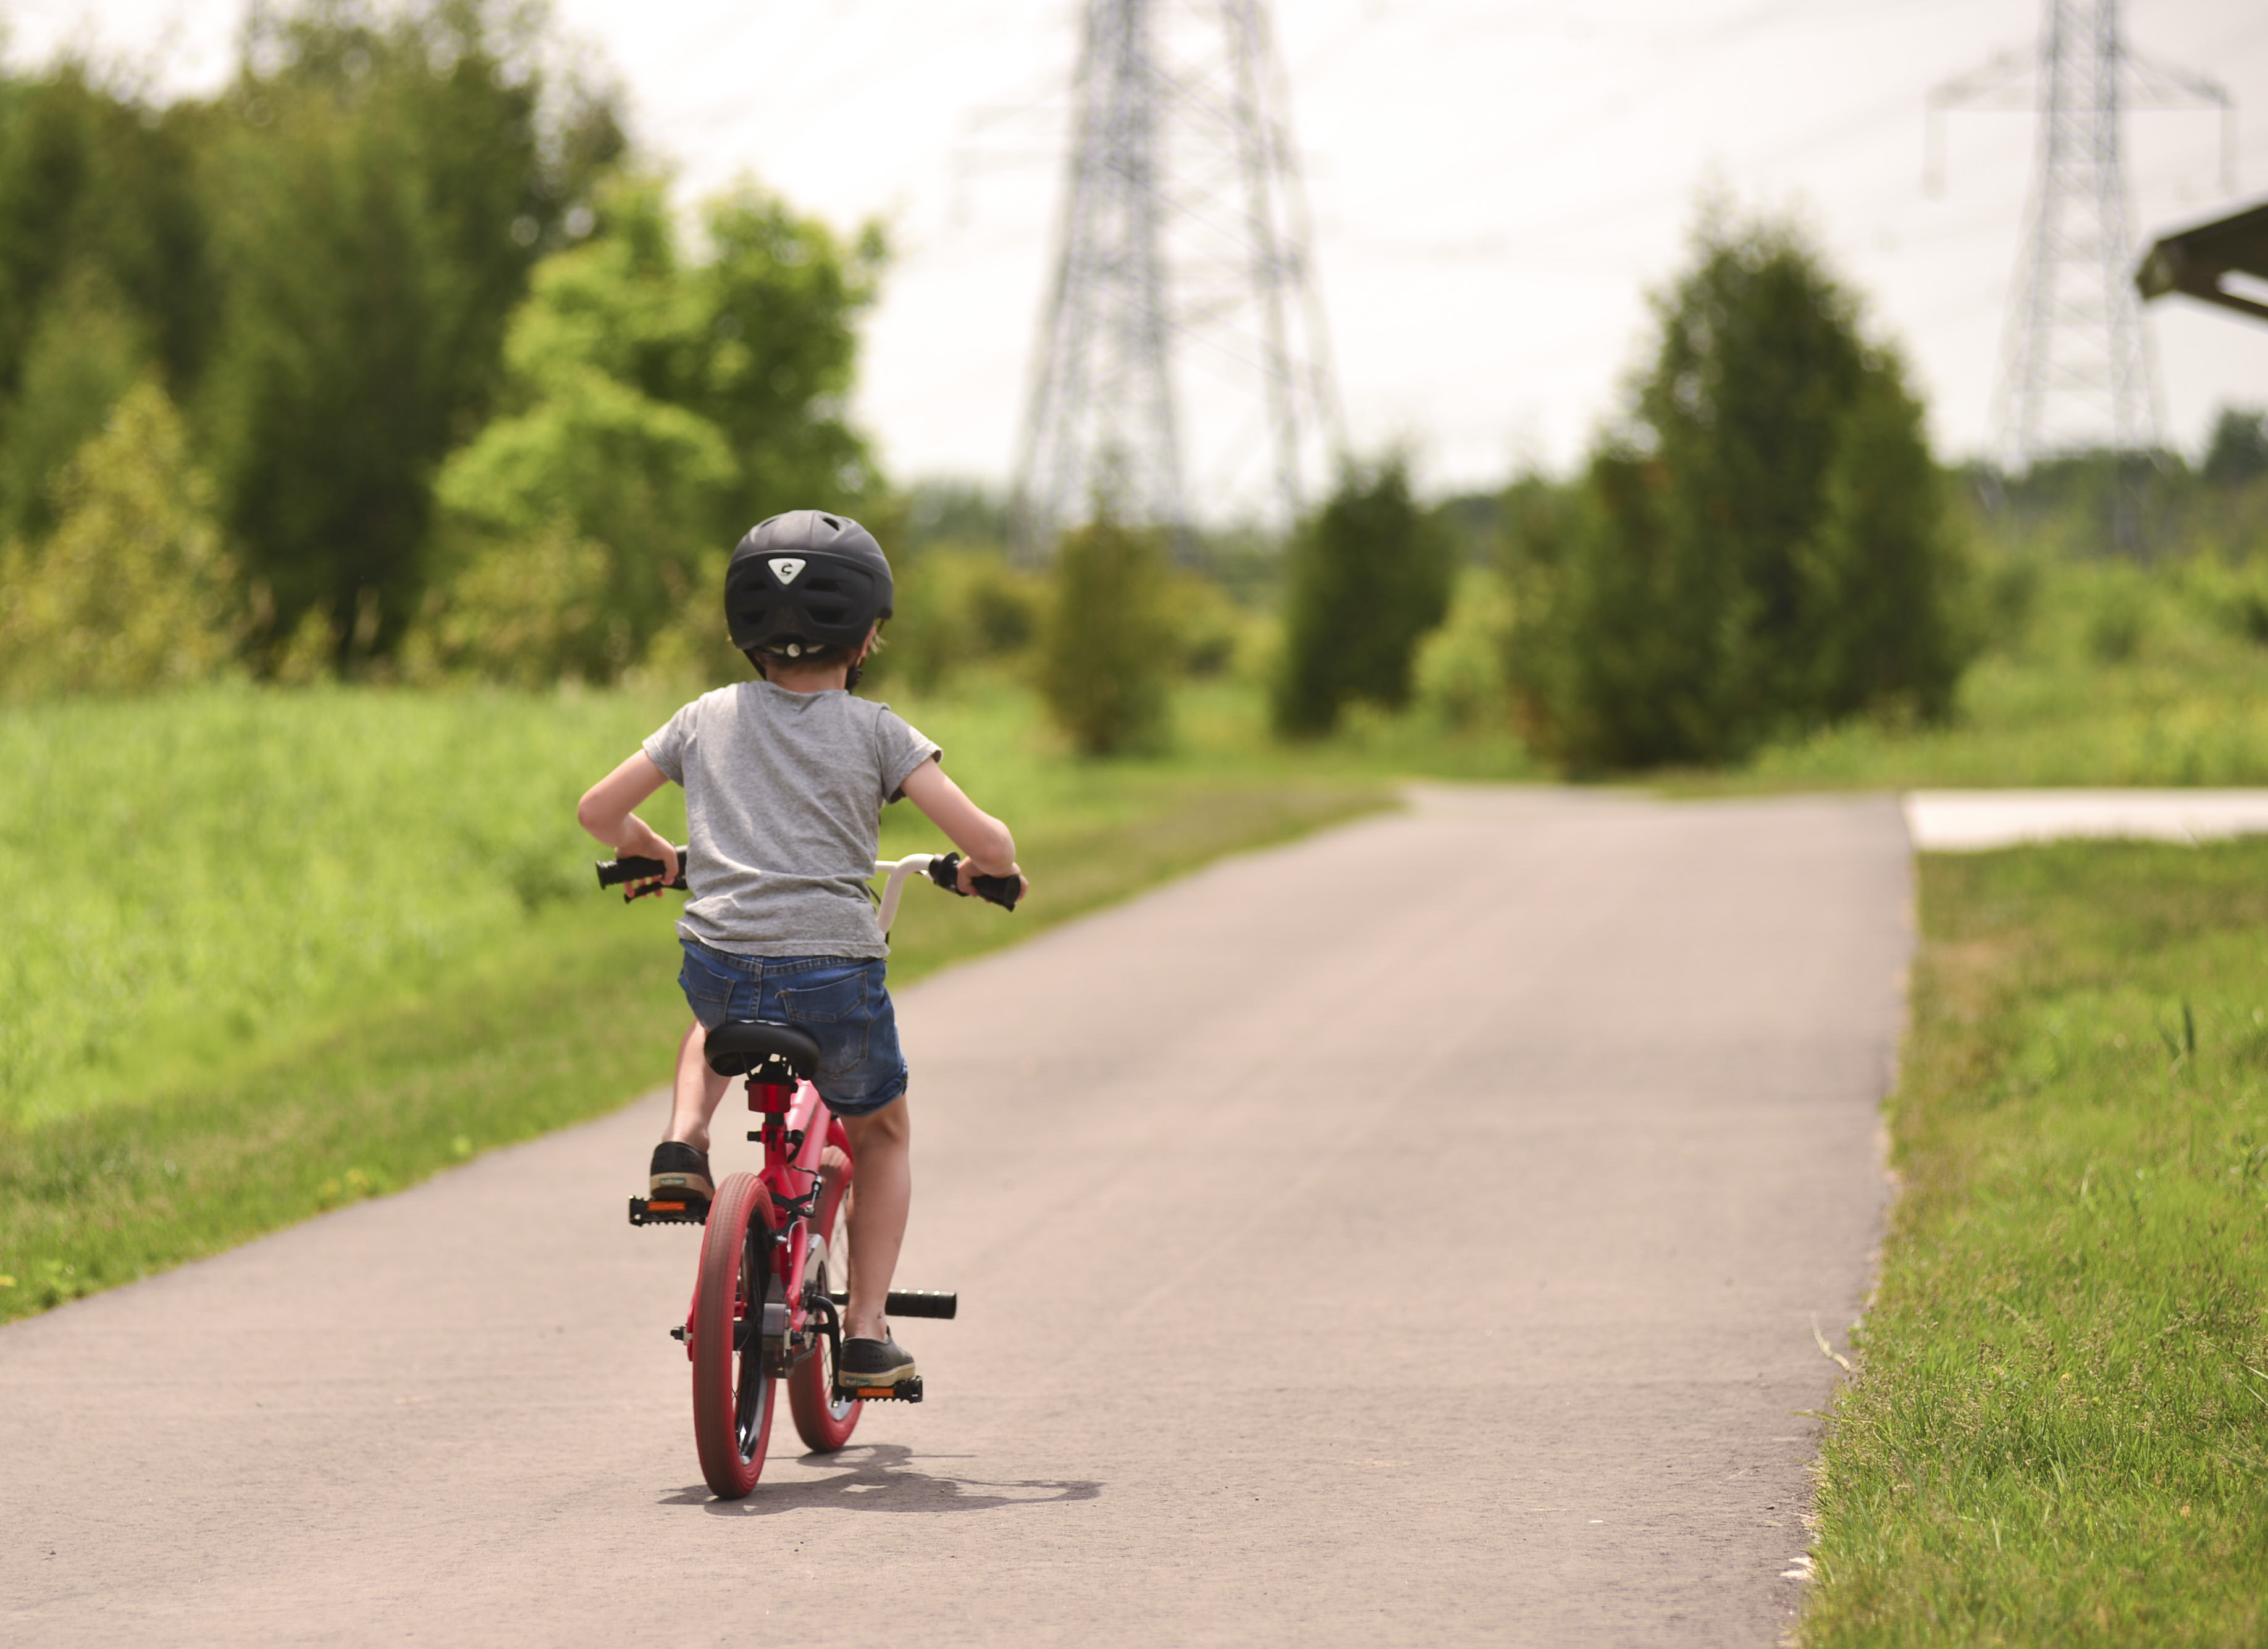 A child rides a bike on their own on a paved path.